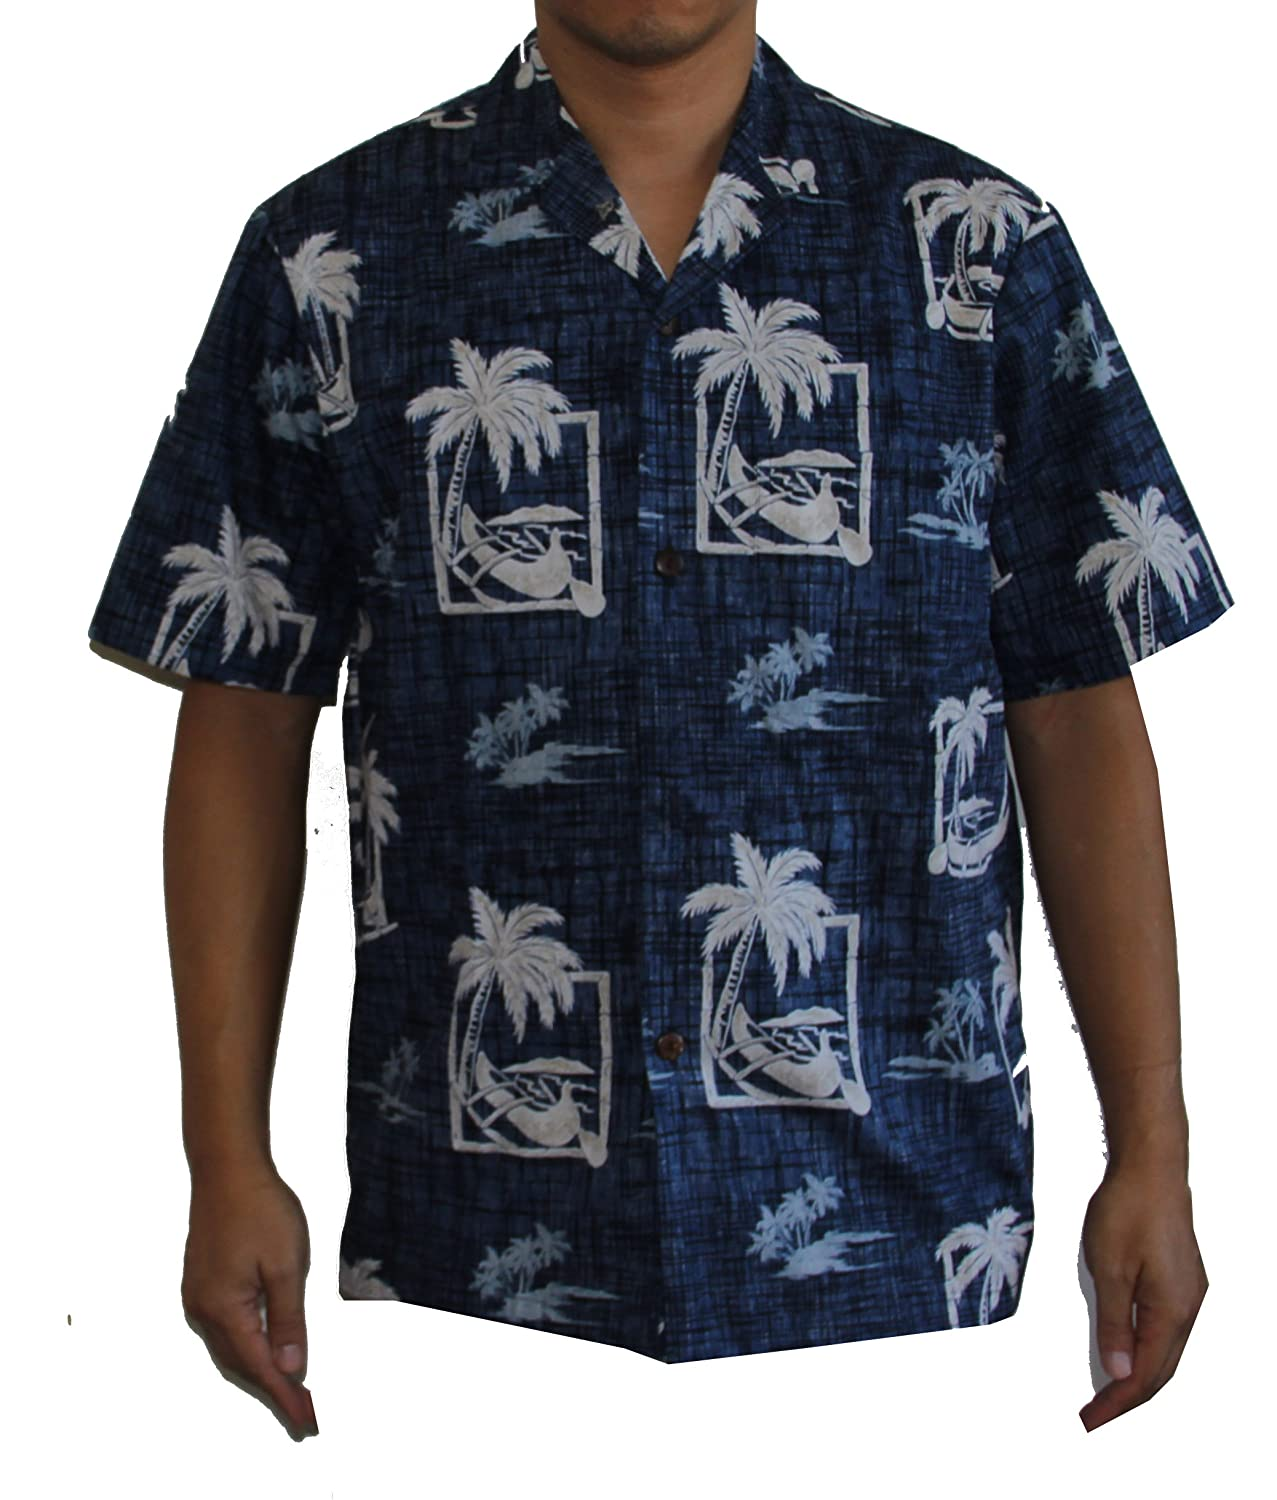 Alohawears Clothing Company Mens Canoe Palm Tree Hawaiian Aloha Shirt